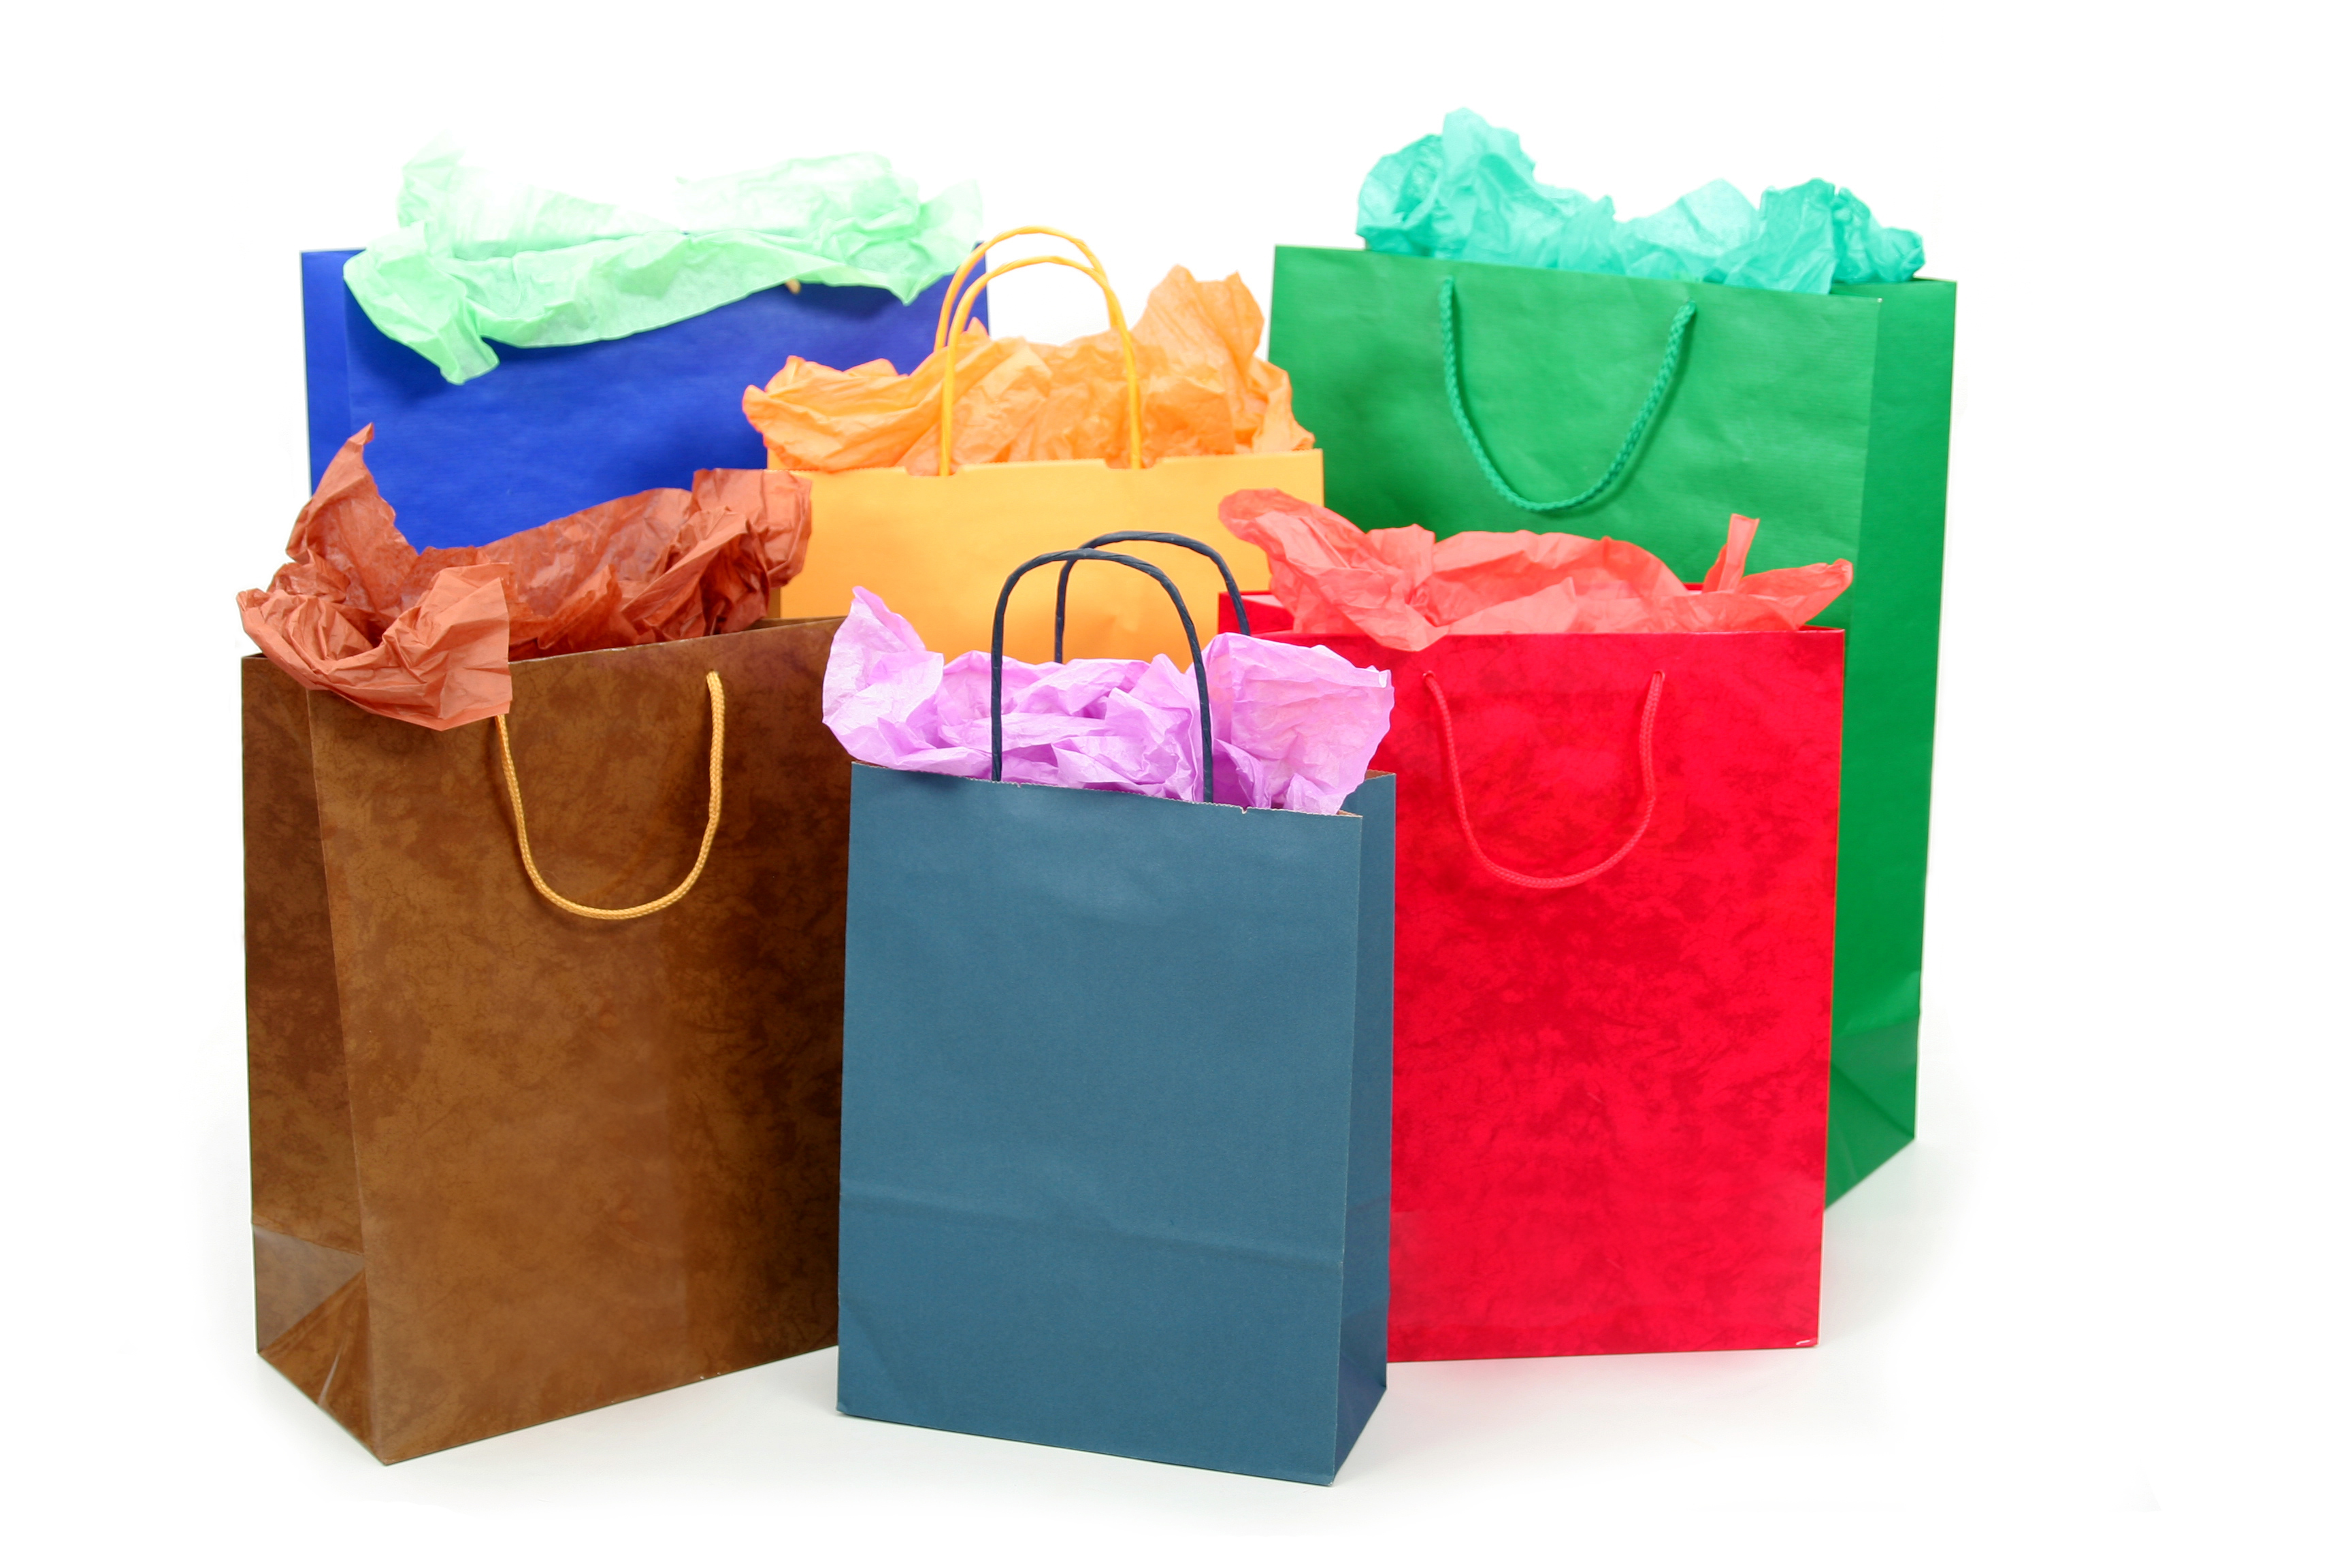 Shopping bags shopping bag clipart 3.